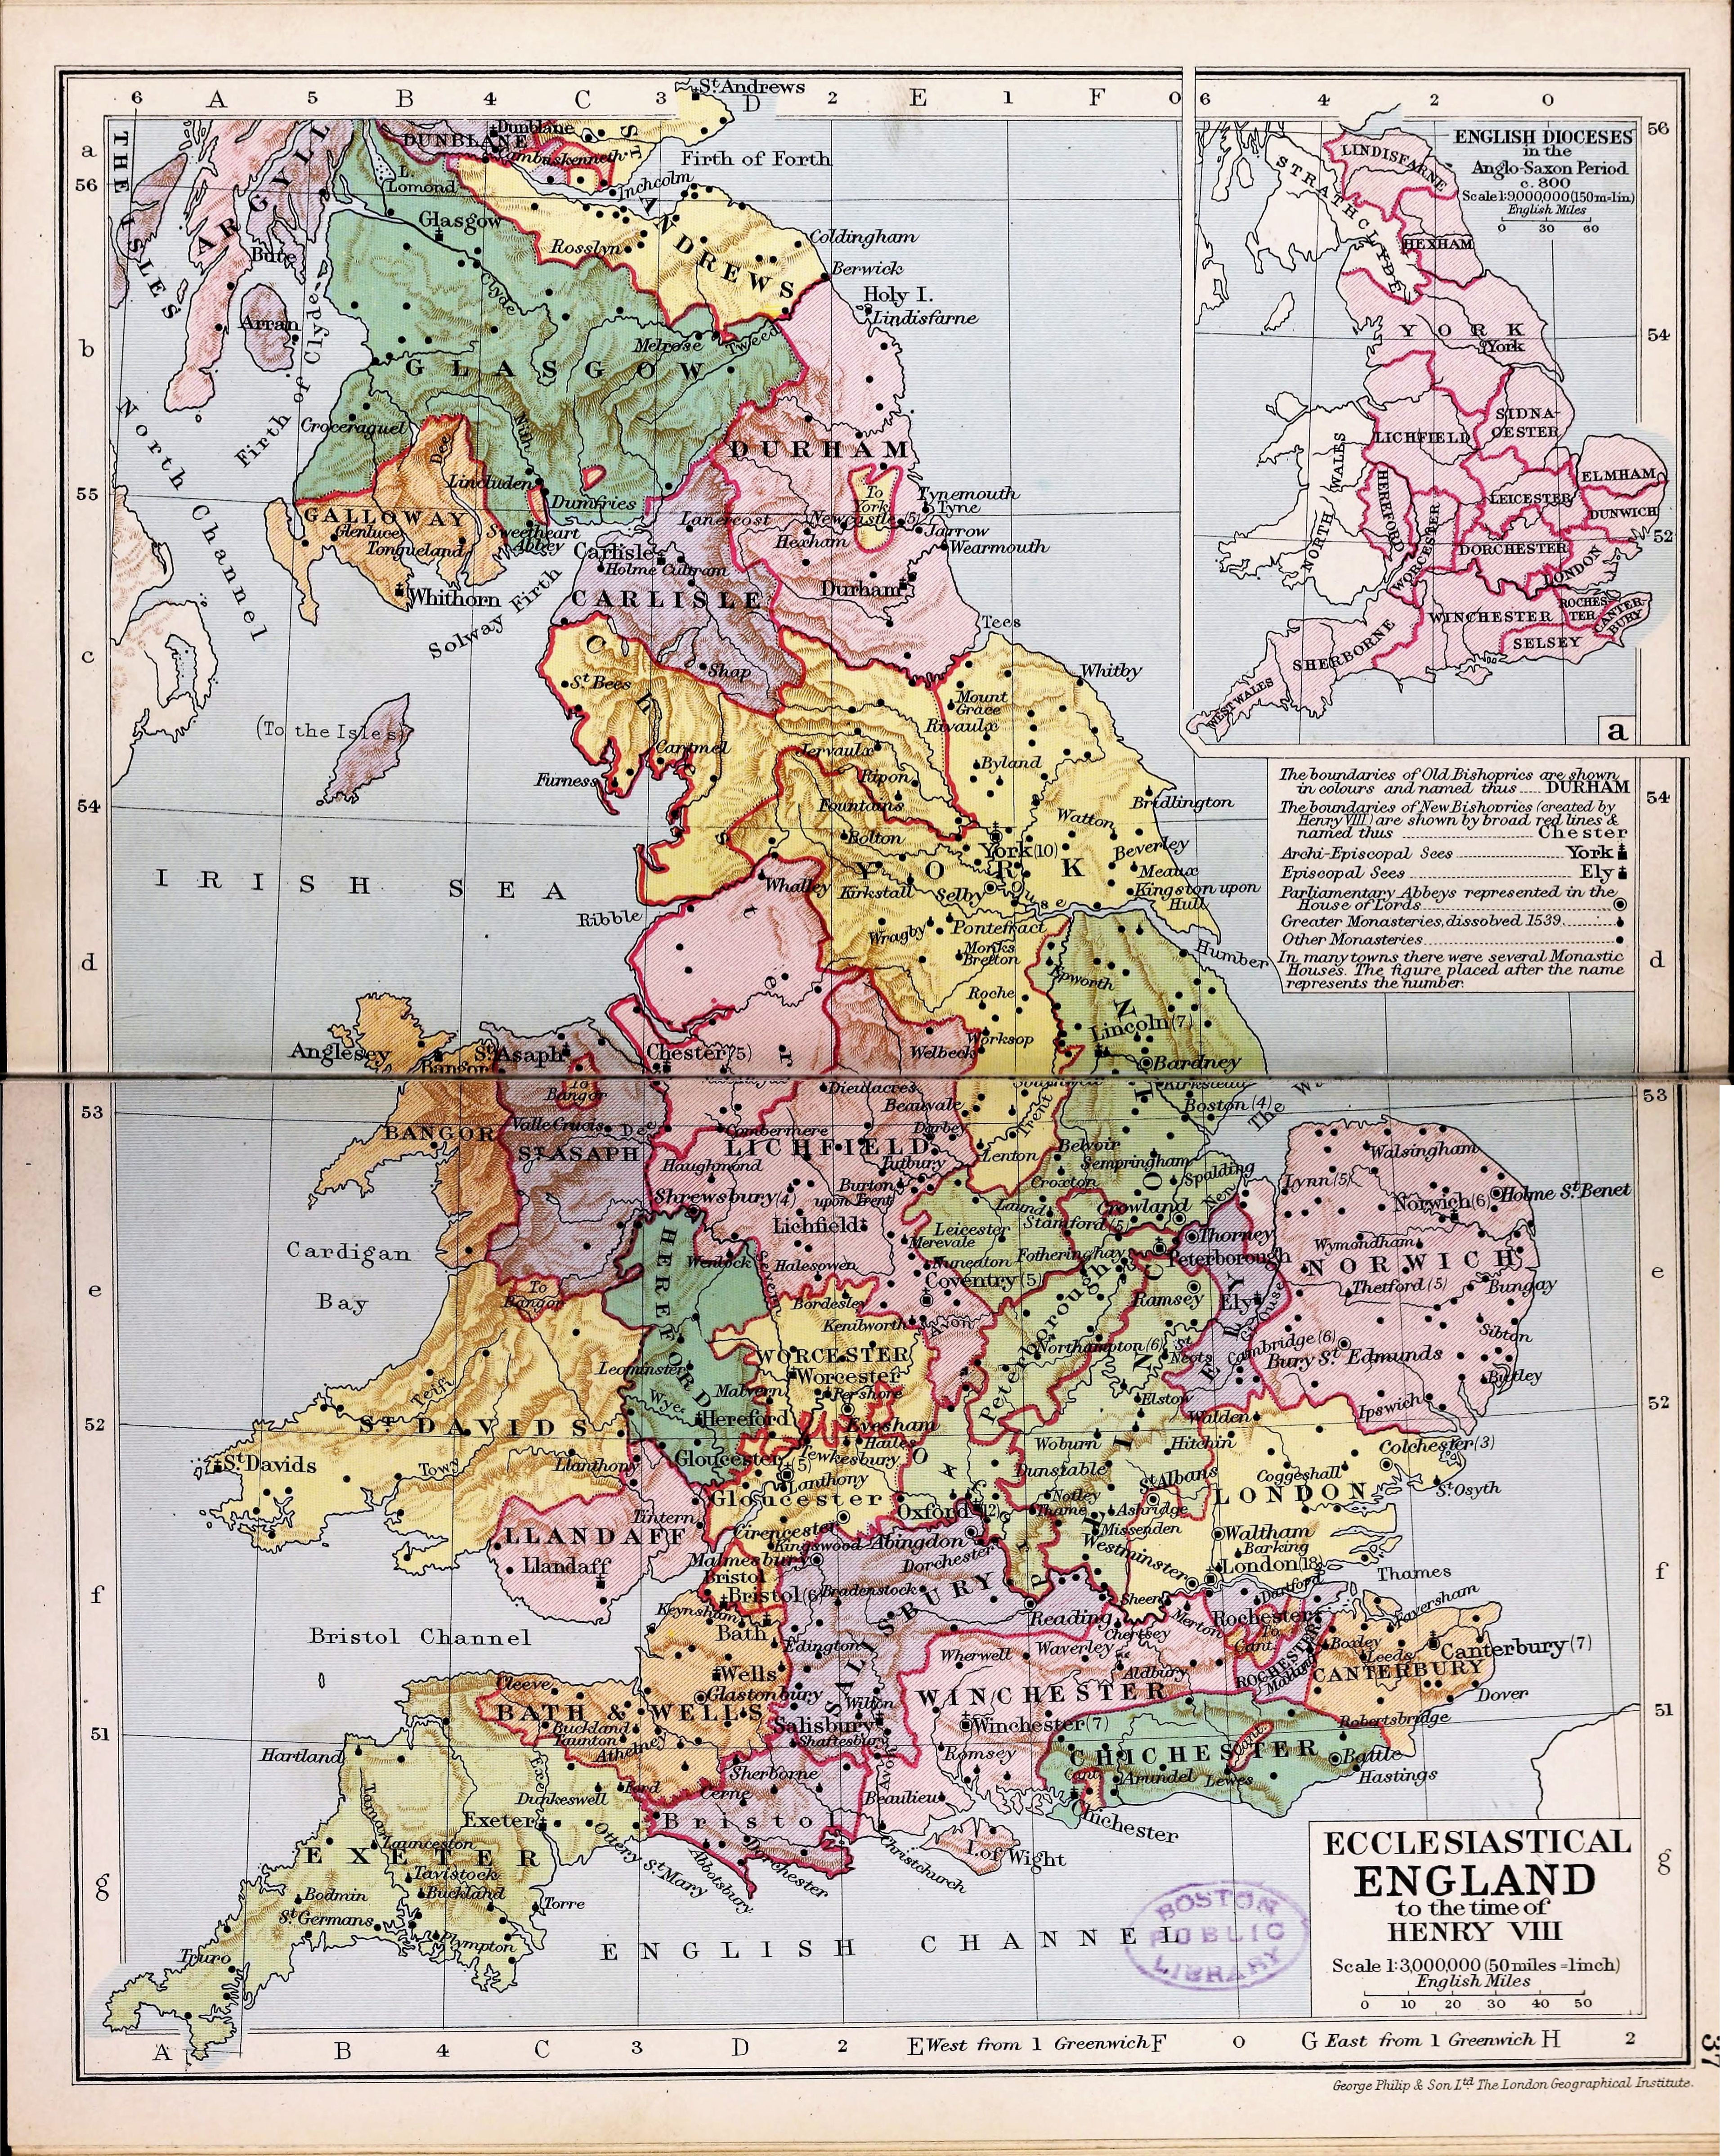 Map Of England Henry Viii.File Ecclesiastical England At The Time Of Henry Viii Png